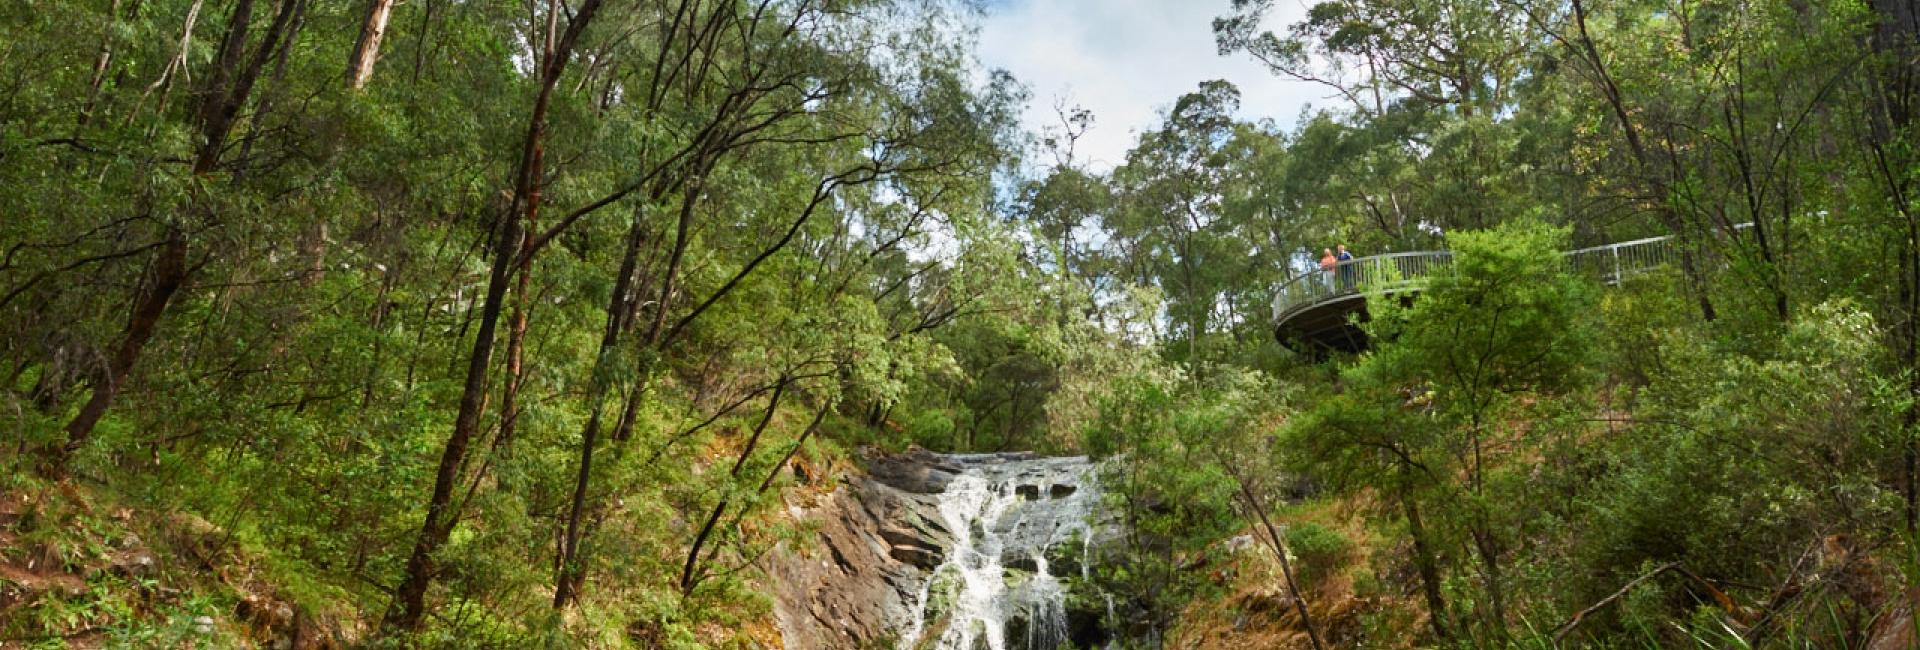 Beedelup Falls, Pemberton, Australia's South West